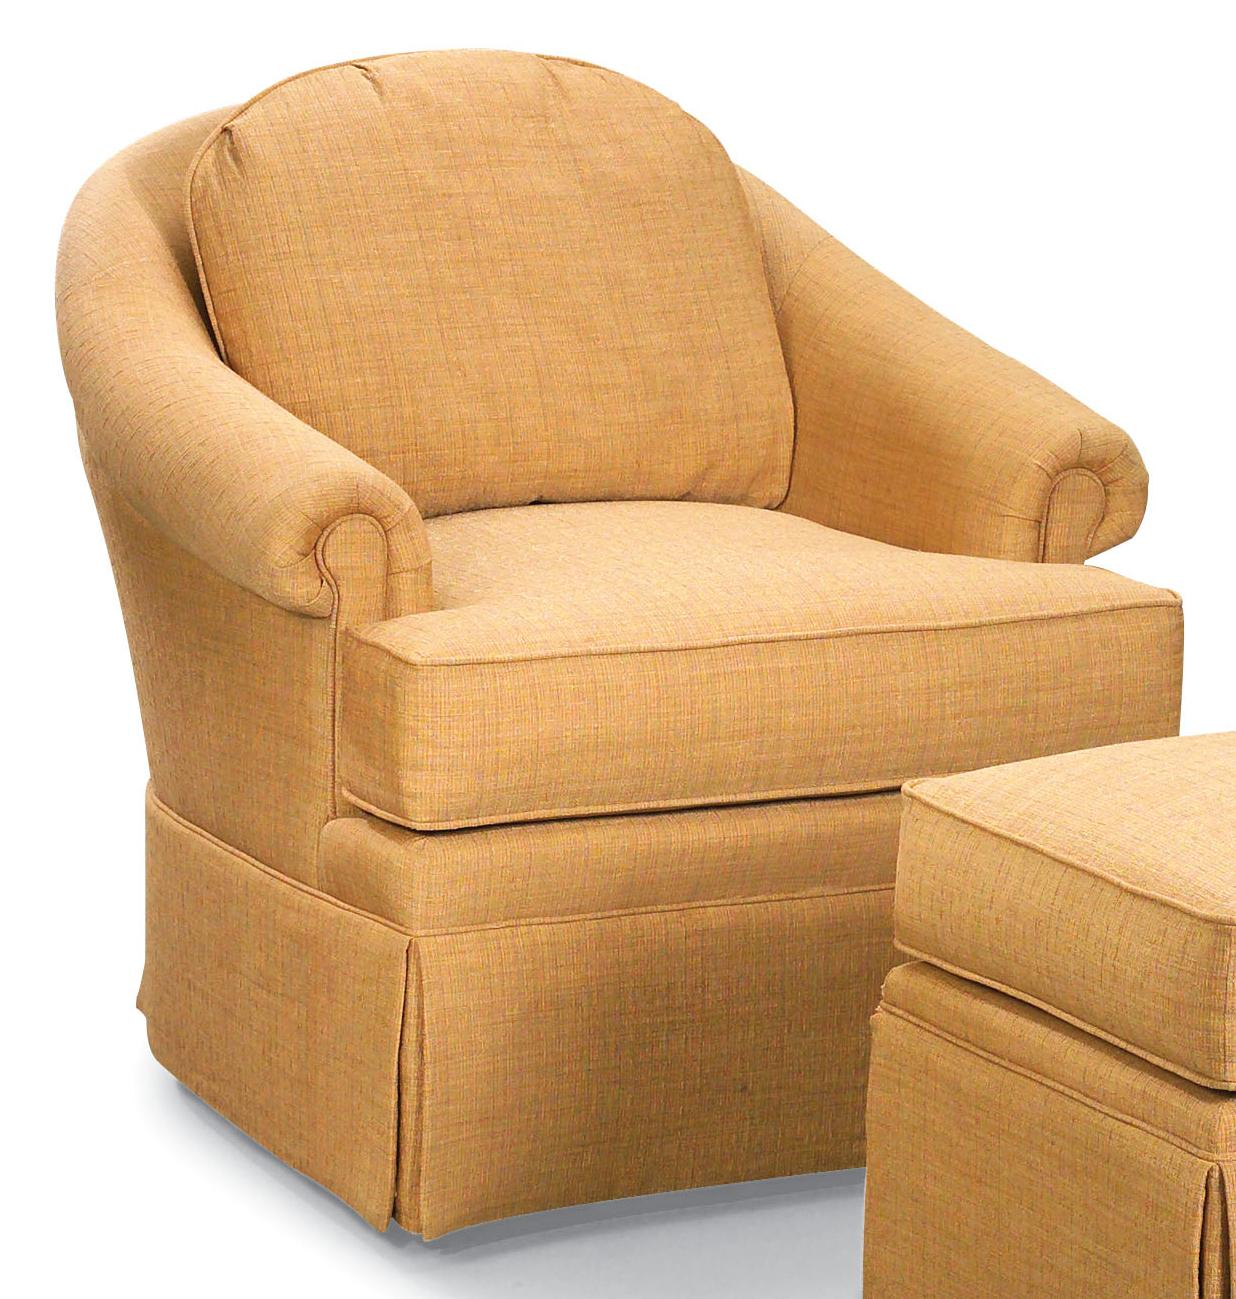 Barrel Chairs Swivel Rocker Living Room Chairs Armchairs